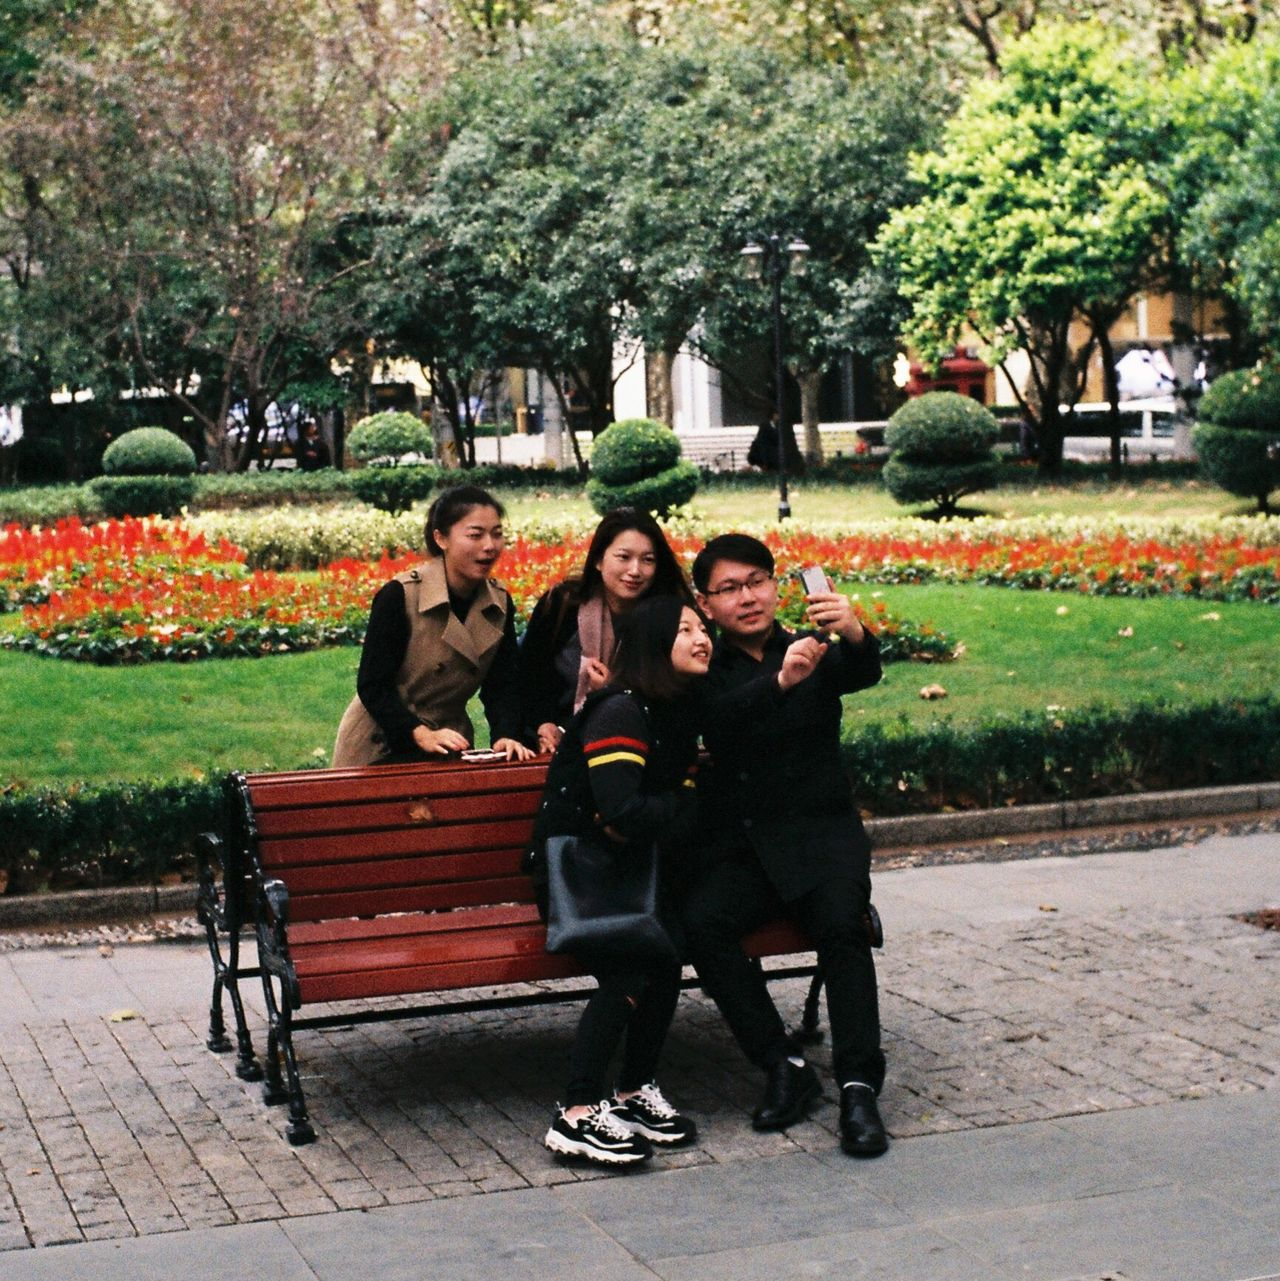 Capture this moment My Street Photography From My Point Of View Embrace Urban Life Film Leica M6 Leicacamera Streetphotography Shanghai Shanghai Streets Shanghai Photography Full Length Friendship Outdoors Cheerful Taking Photos Capture The Moment